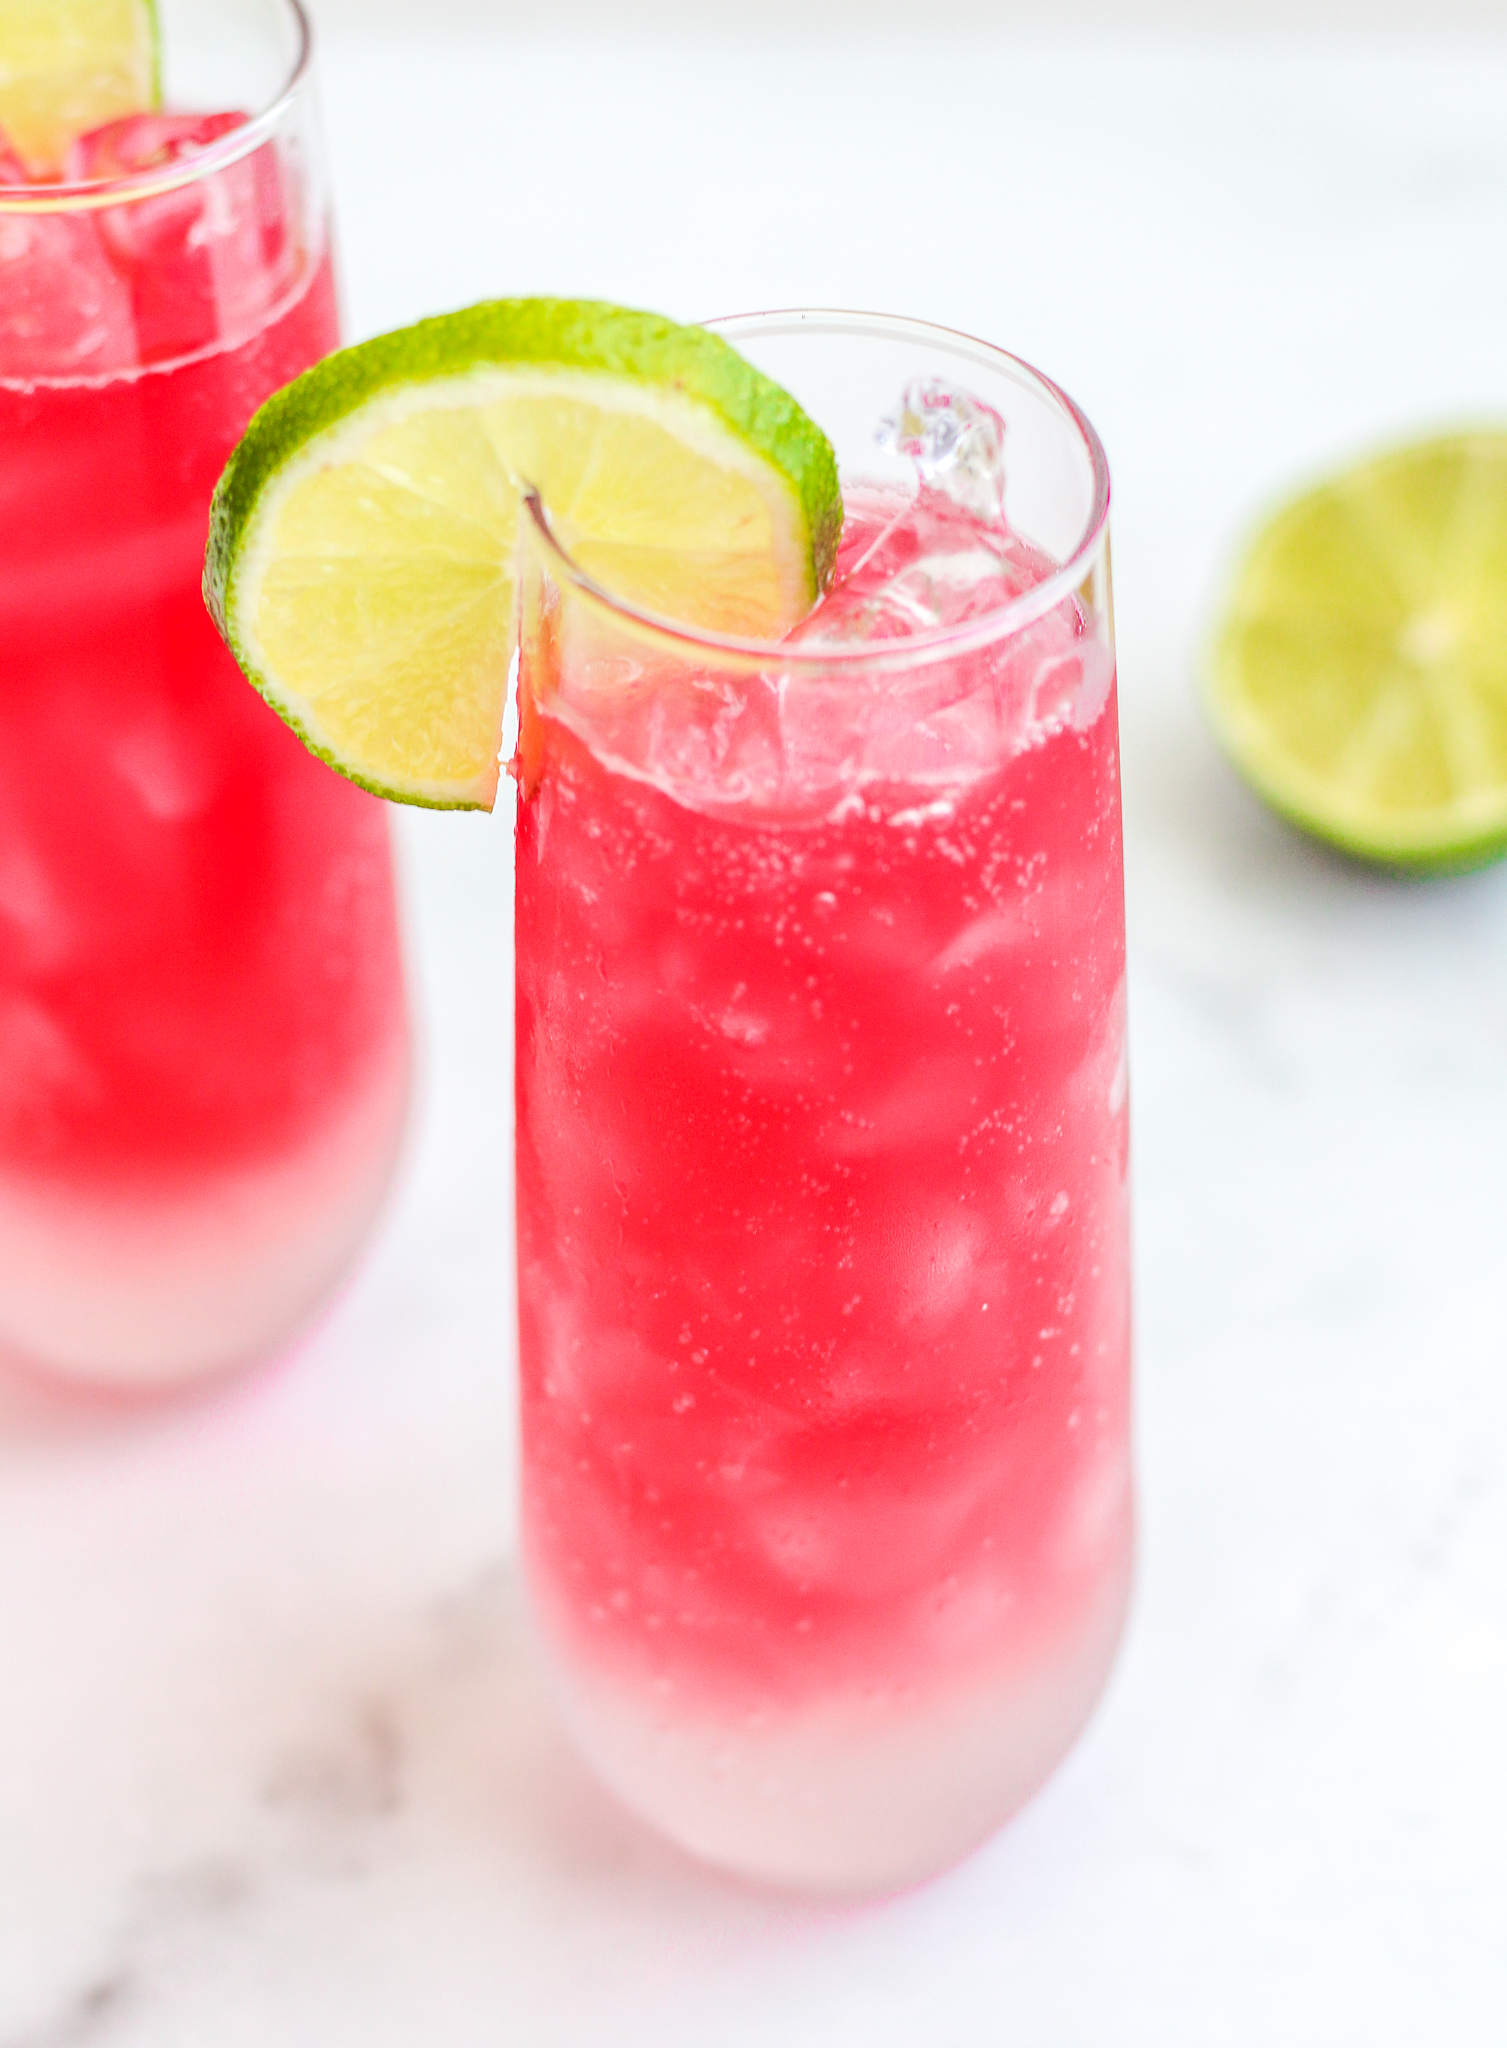 Cranberry ginger fizz mocktails in two tall clear glasses. The beverage is fizzy and pink with a lime wedge on top of the glass